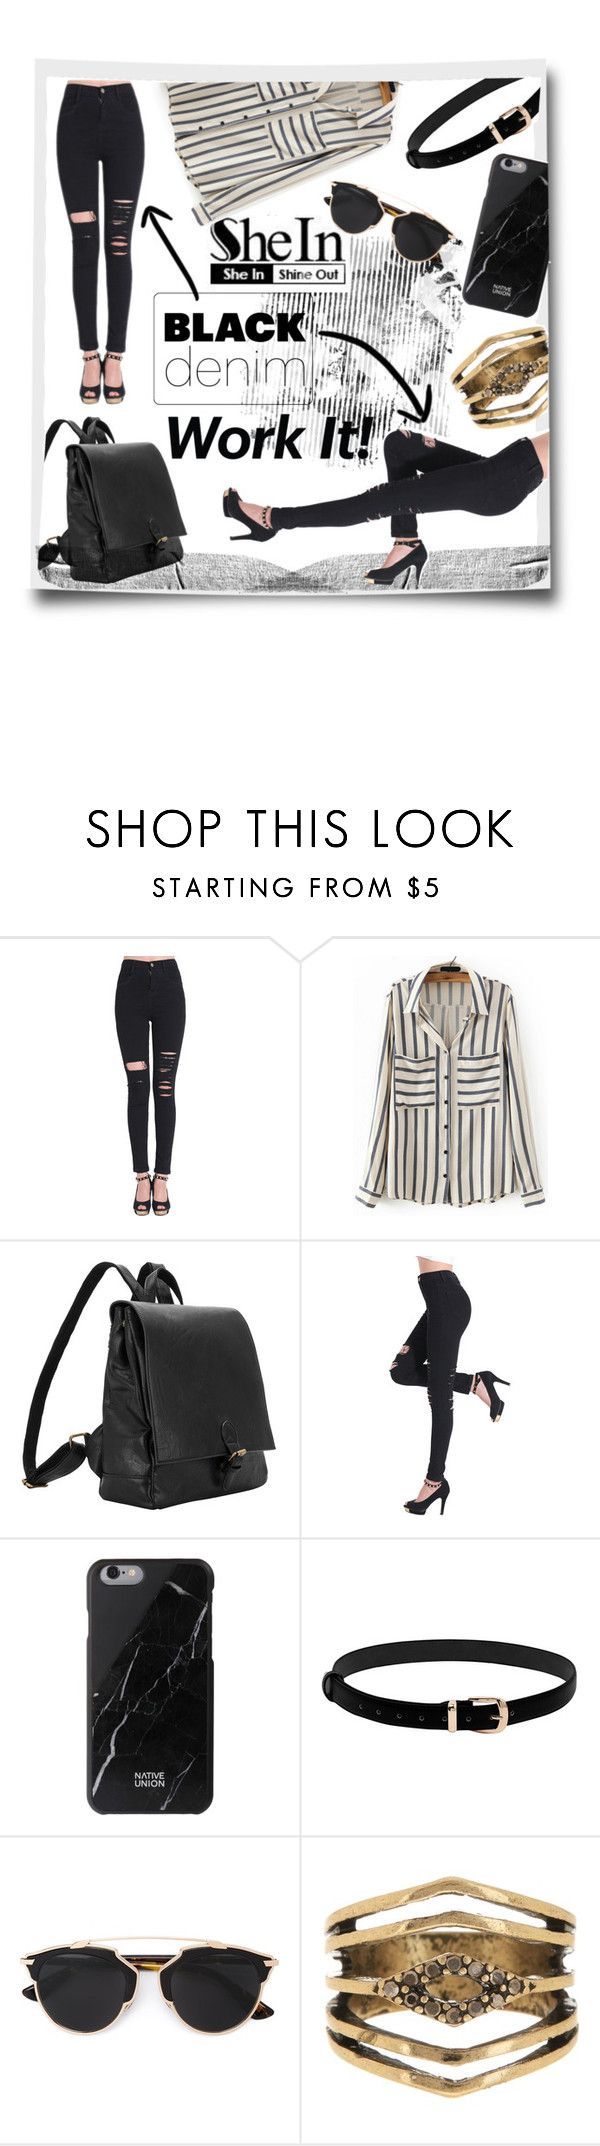 """Black denim (Чёрный деним)"" by kseniz13 ❤ liked on Polyvore featuring Native Union, Christian Dior and Steve Madden"